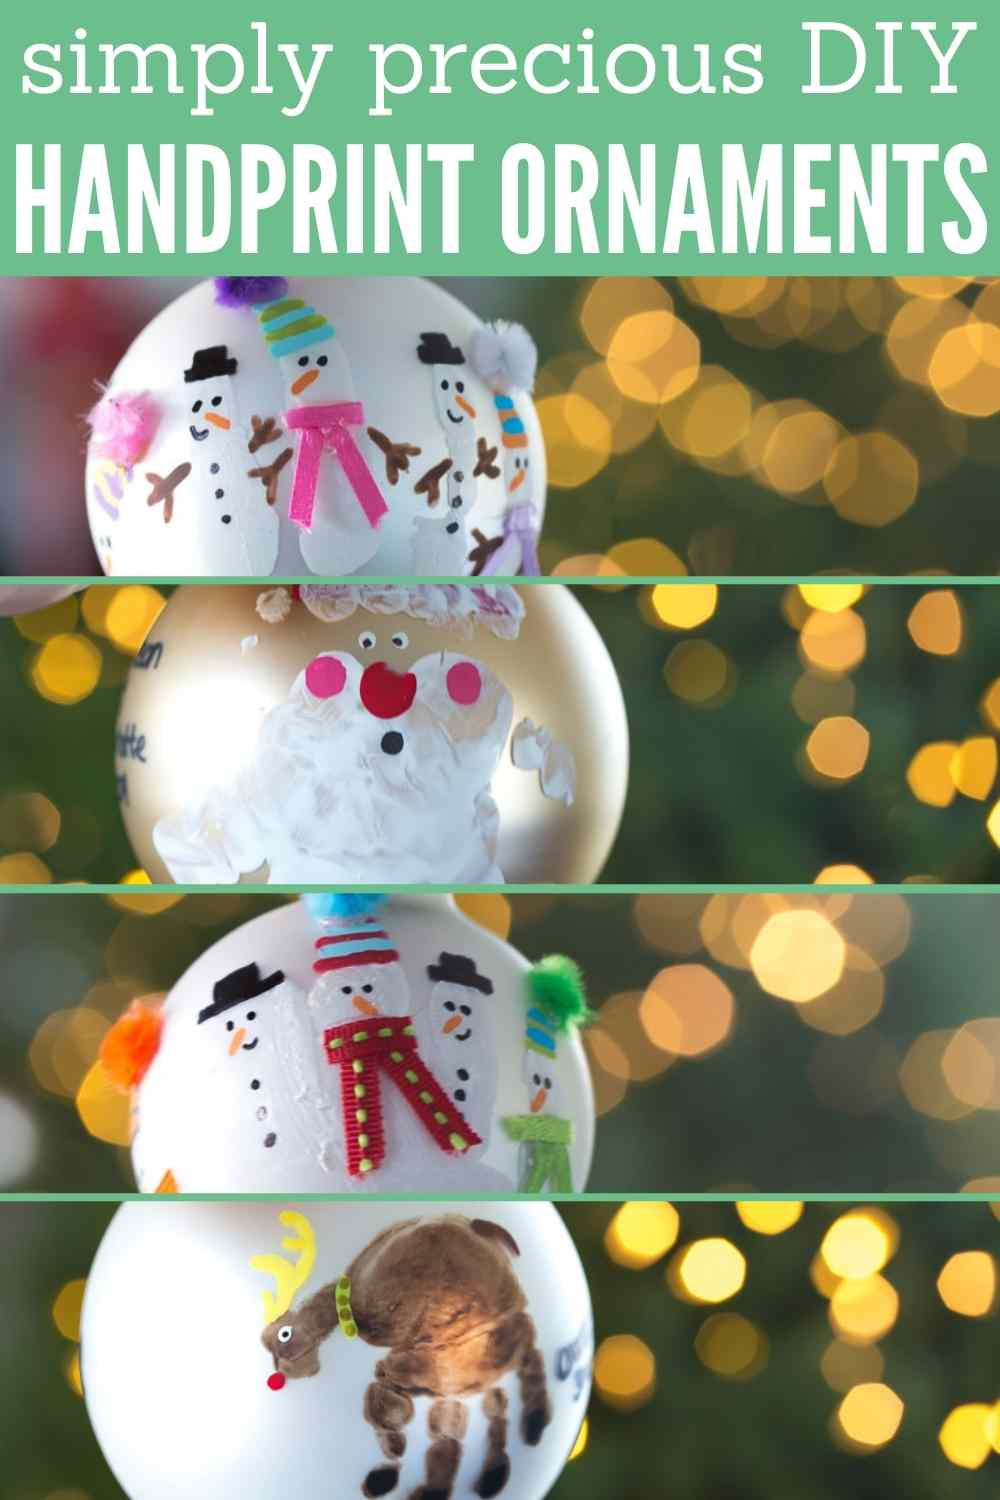 text: simply precious DIY handprint ornaments ideas with four examples - including snowmen, santa, reindeer